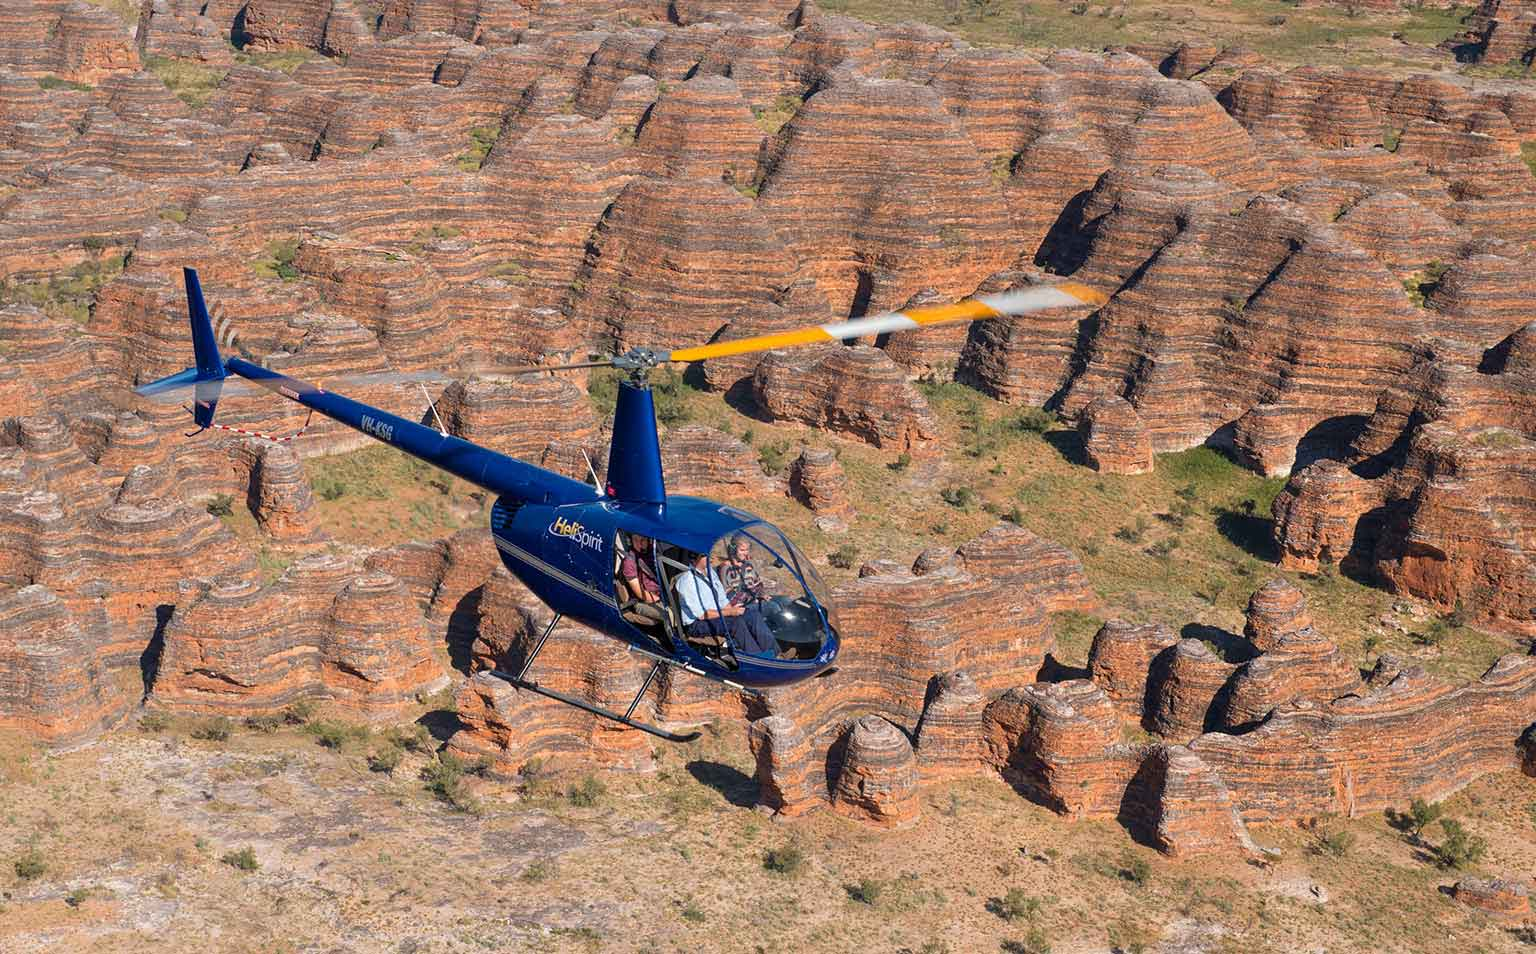 Scenic flight over the Bungle Bungles